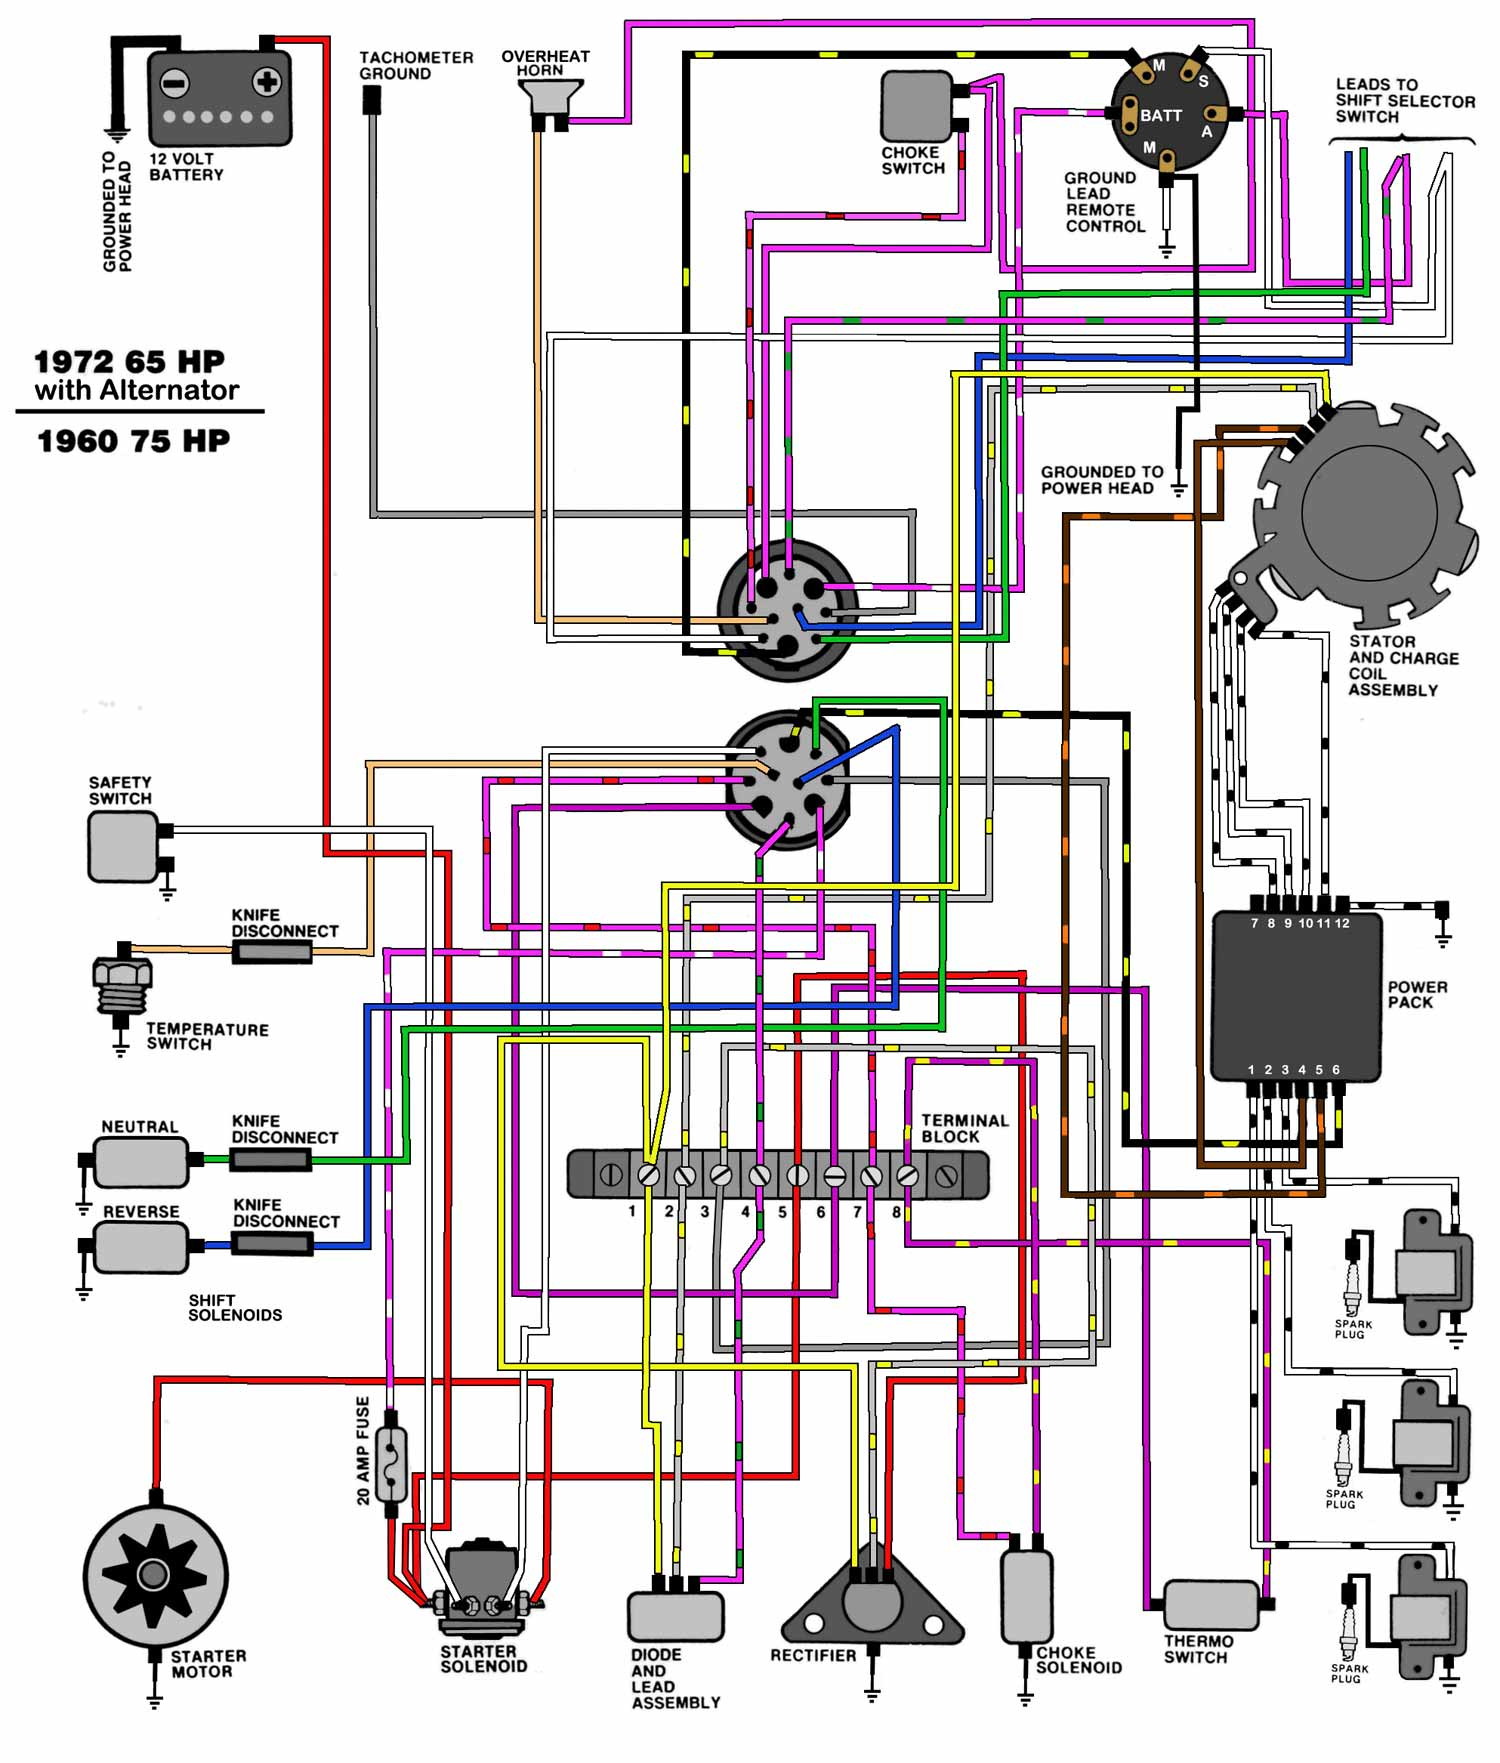 1972_65_Eshift help! trying to adapt a '65 johnson to a newer control [archive omc wiring harness diagram at virtualis.co